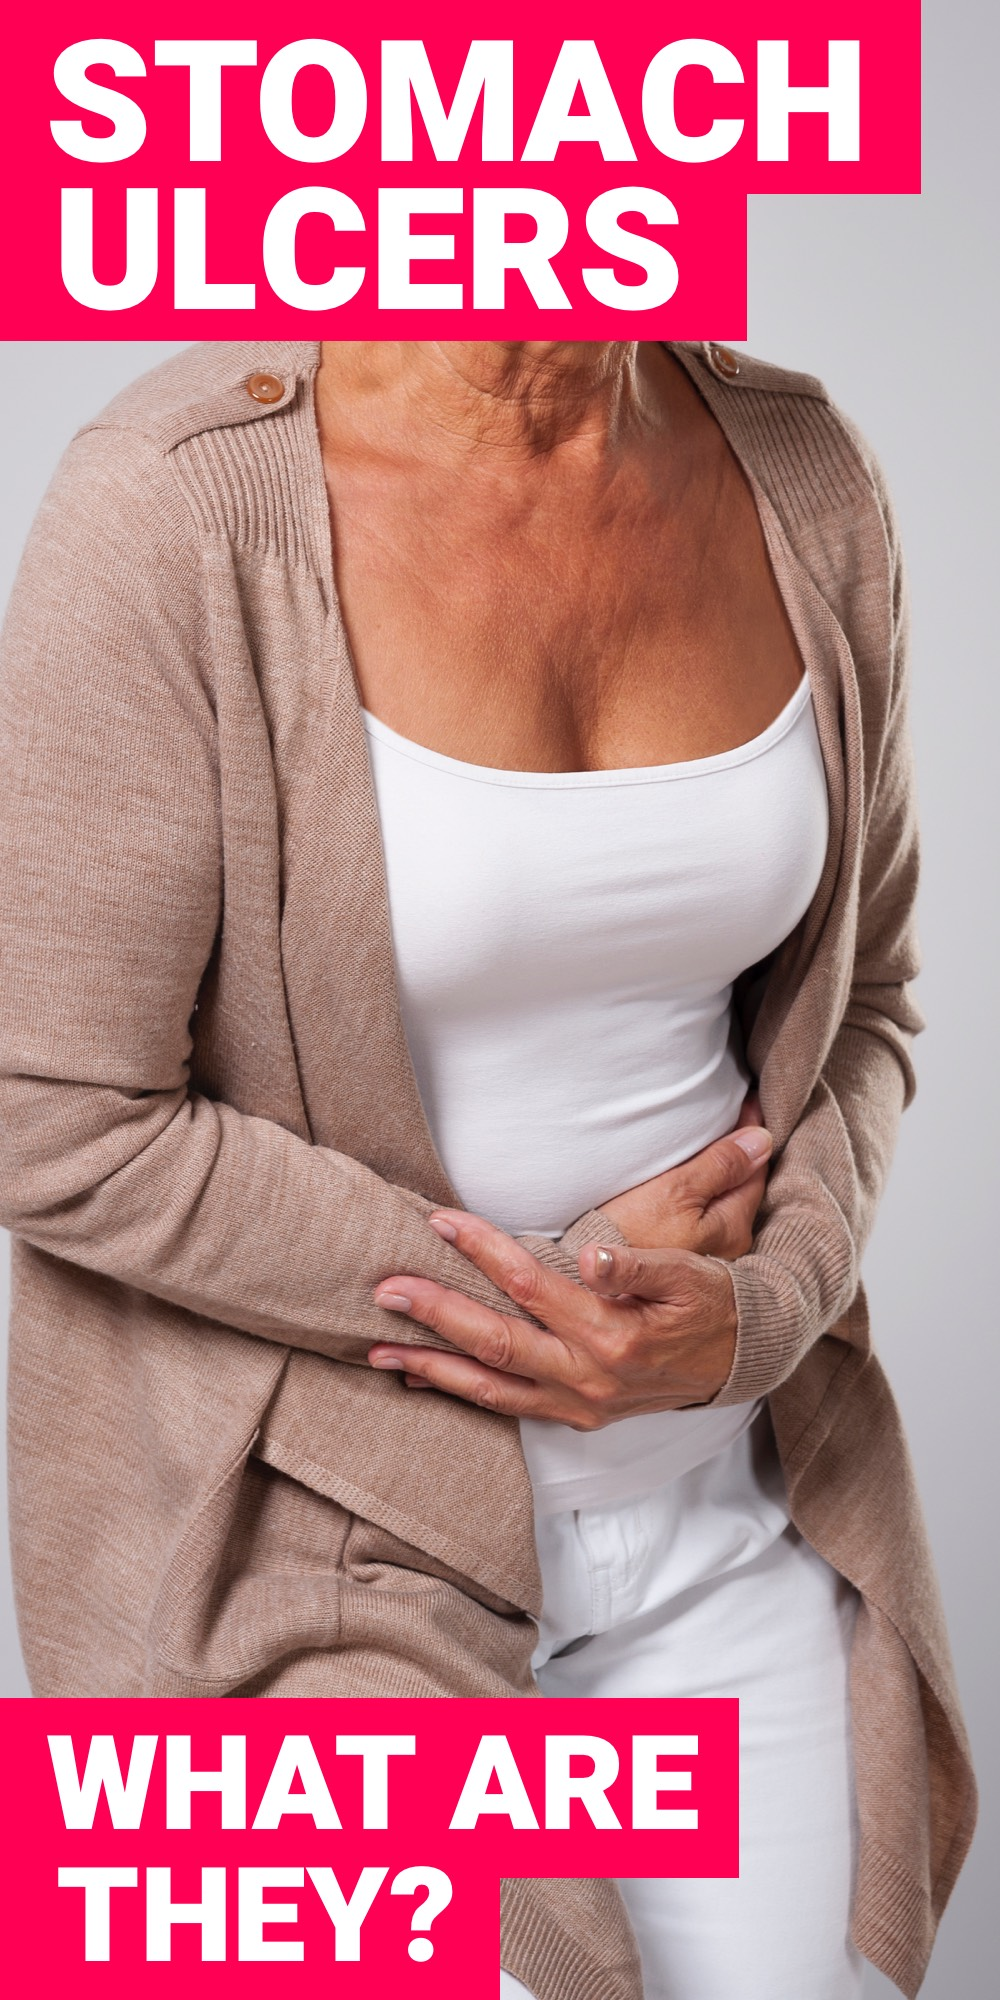 Stomach ulcers can be something that is painful to have. But what are stomach ulcers? What are the causes? Find out here.